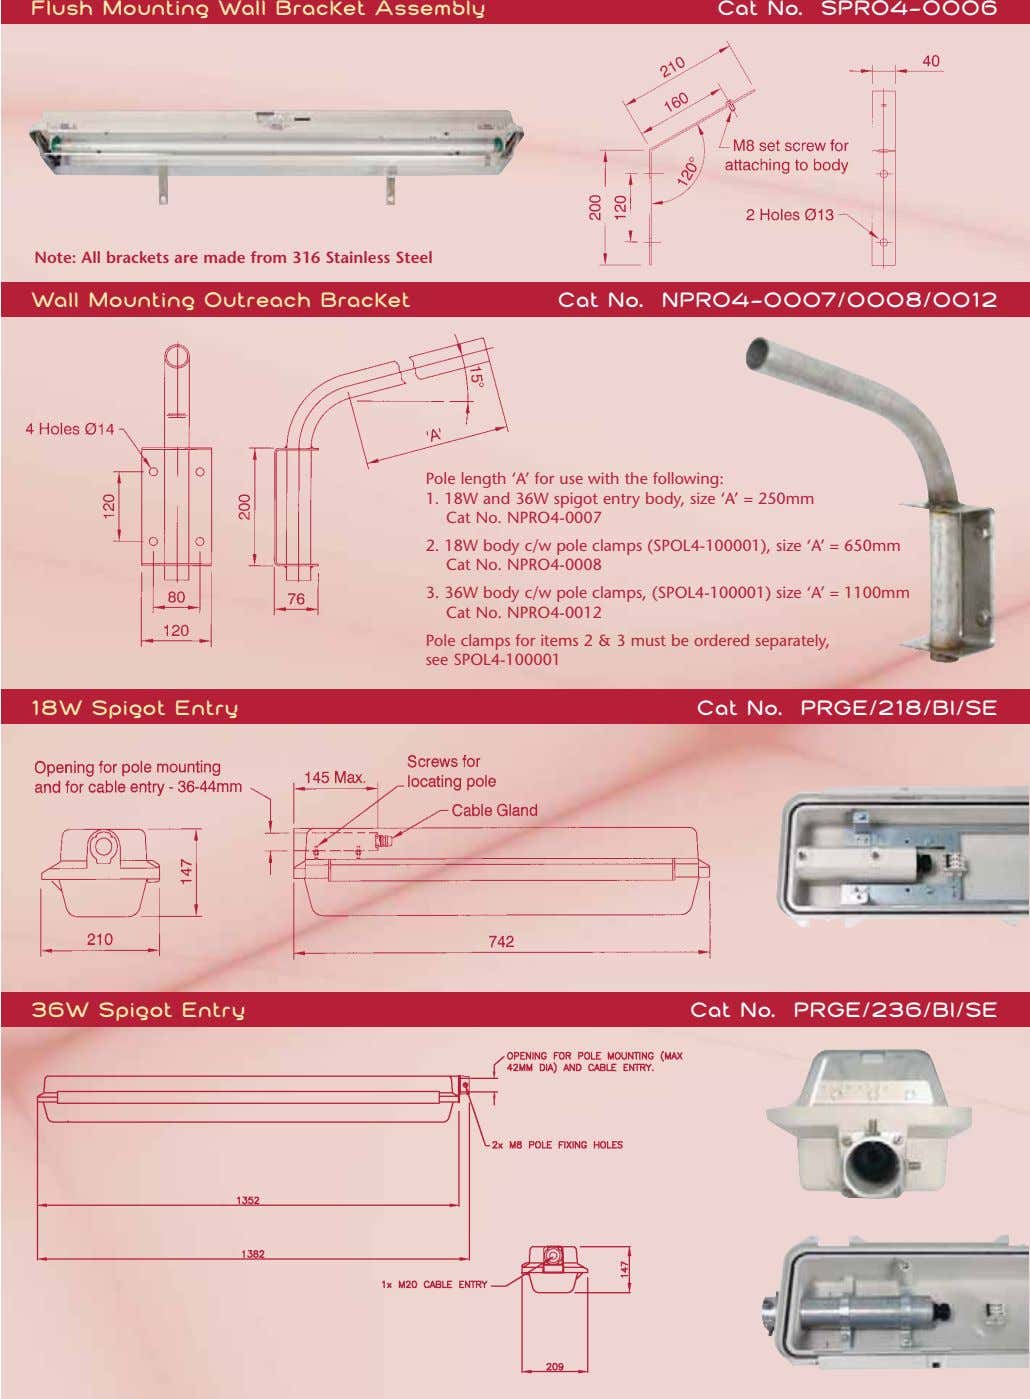 Flush Mounting Wall Bracket Assembly Cat No. SPRO4-0006 Note: All brackets are made from 316